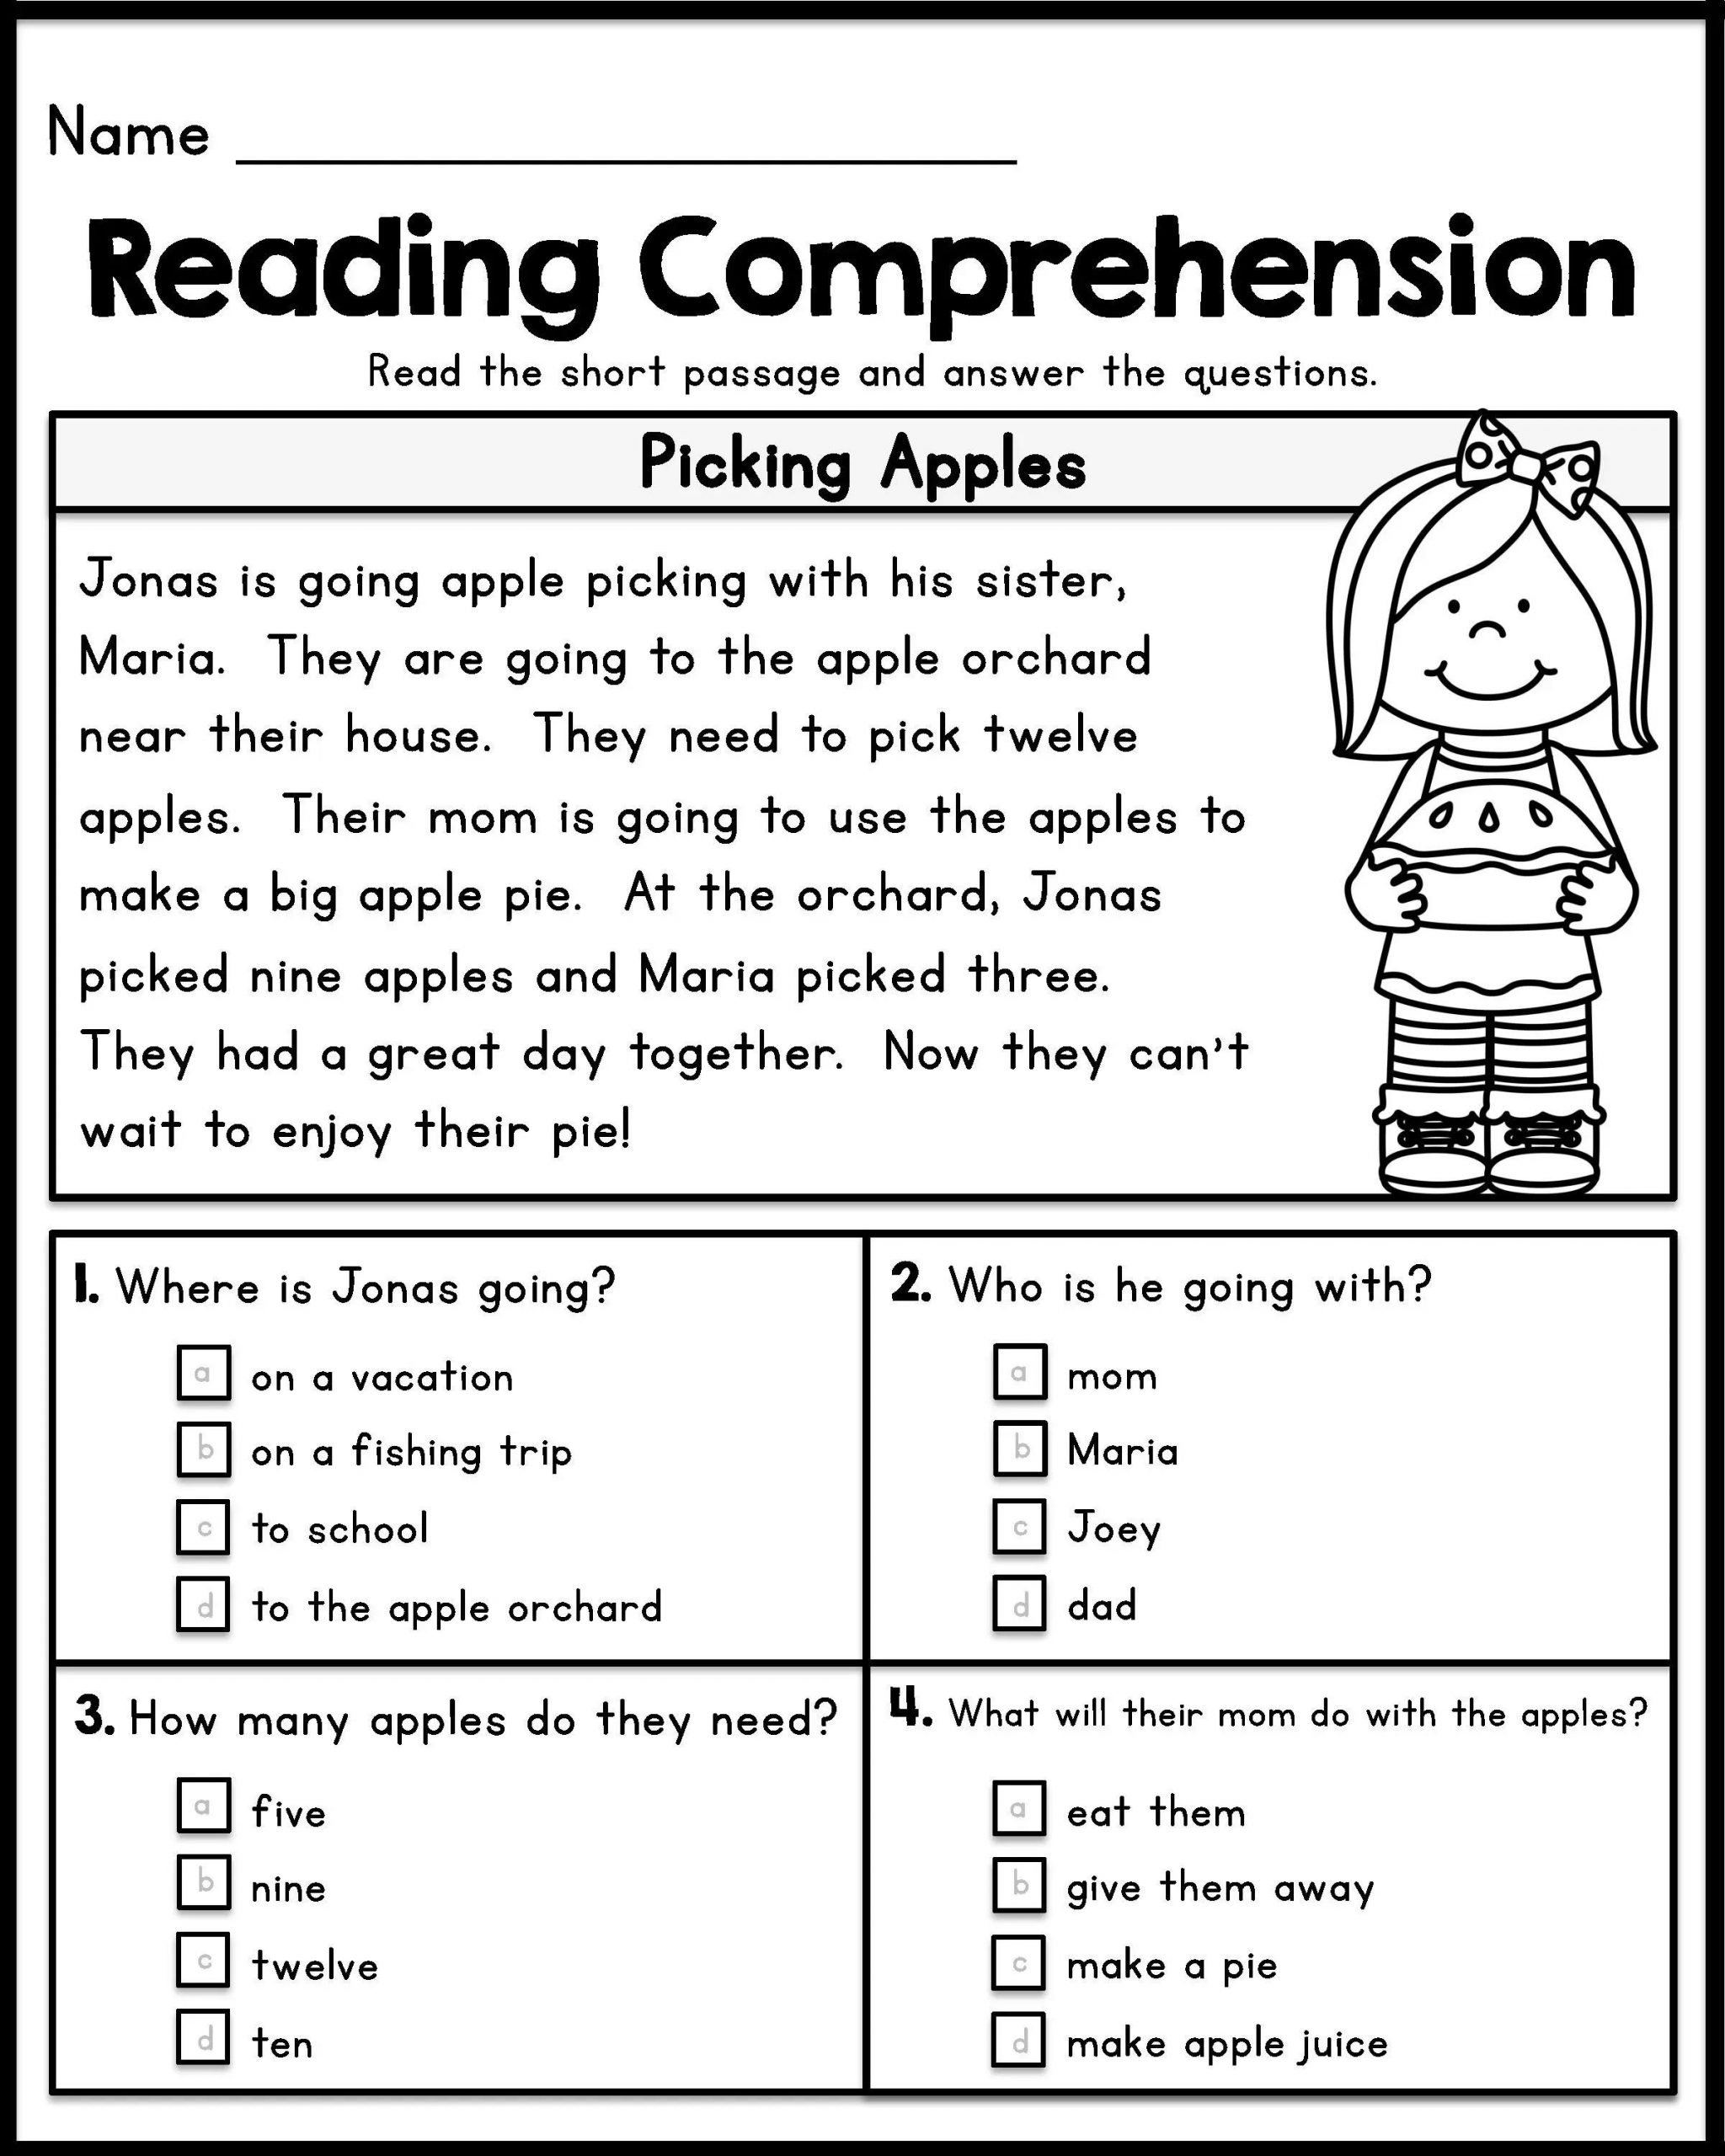 Free First Grade Reading Worksheets 12 Good Examples 1st Grade Worksheets Free Download